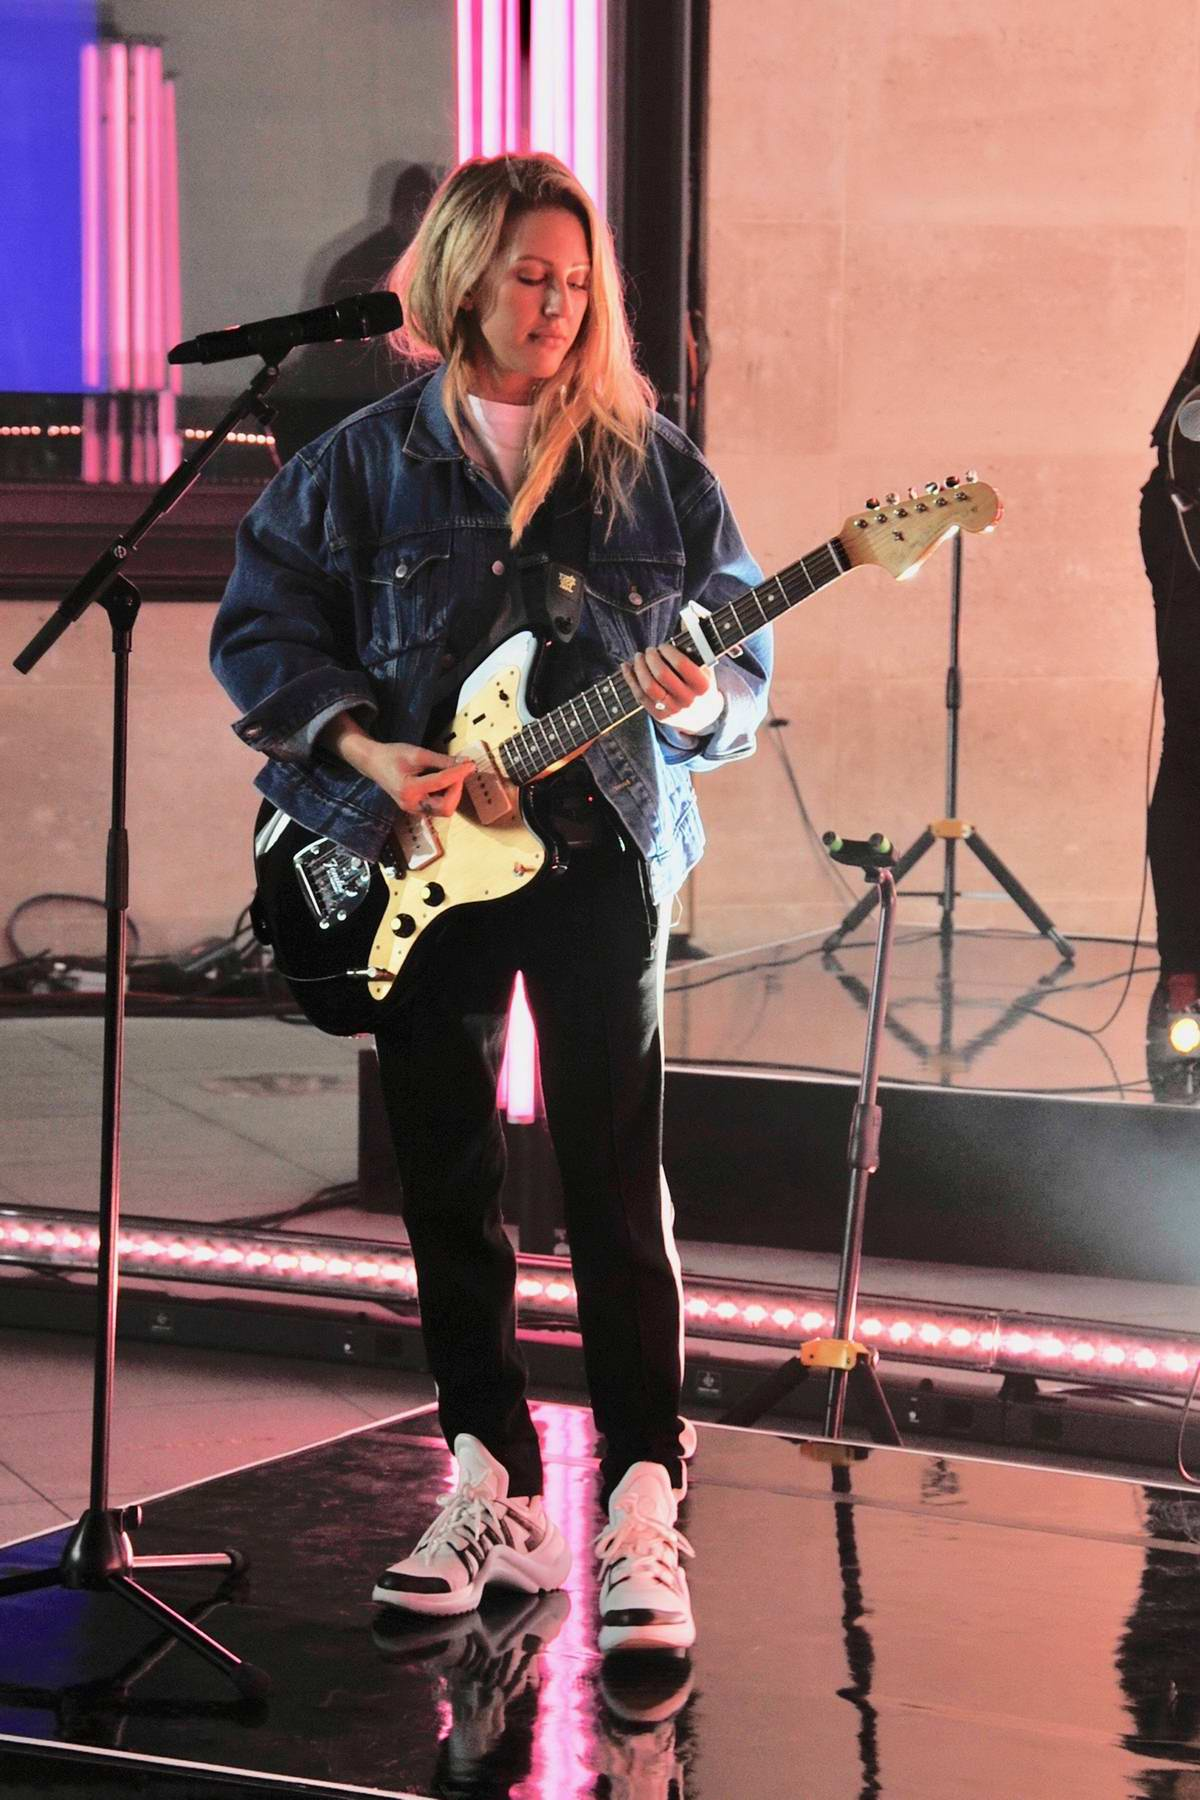 Ellie Goulding performing sound checks at the BBC One Show to promote her new single in London, UK